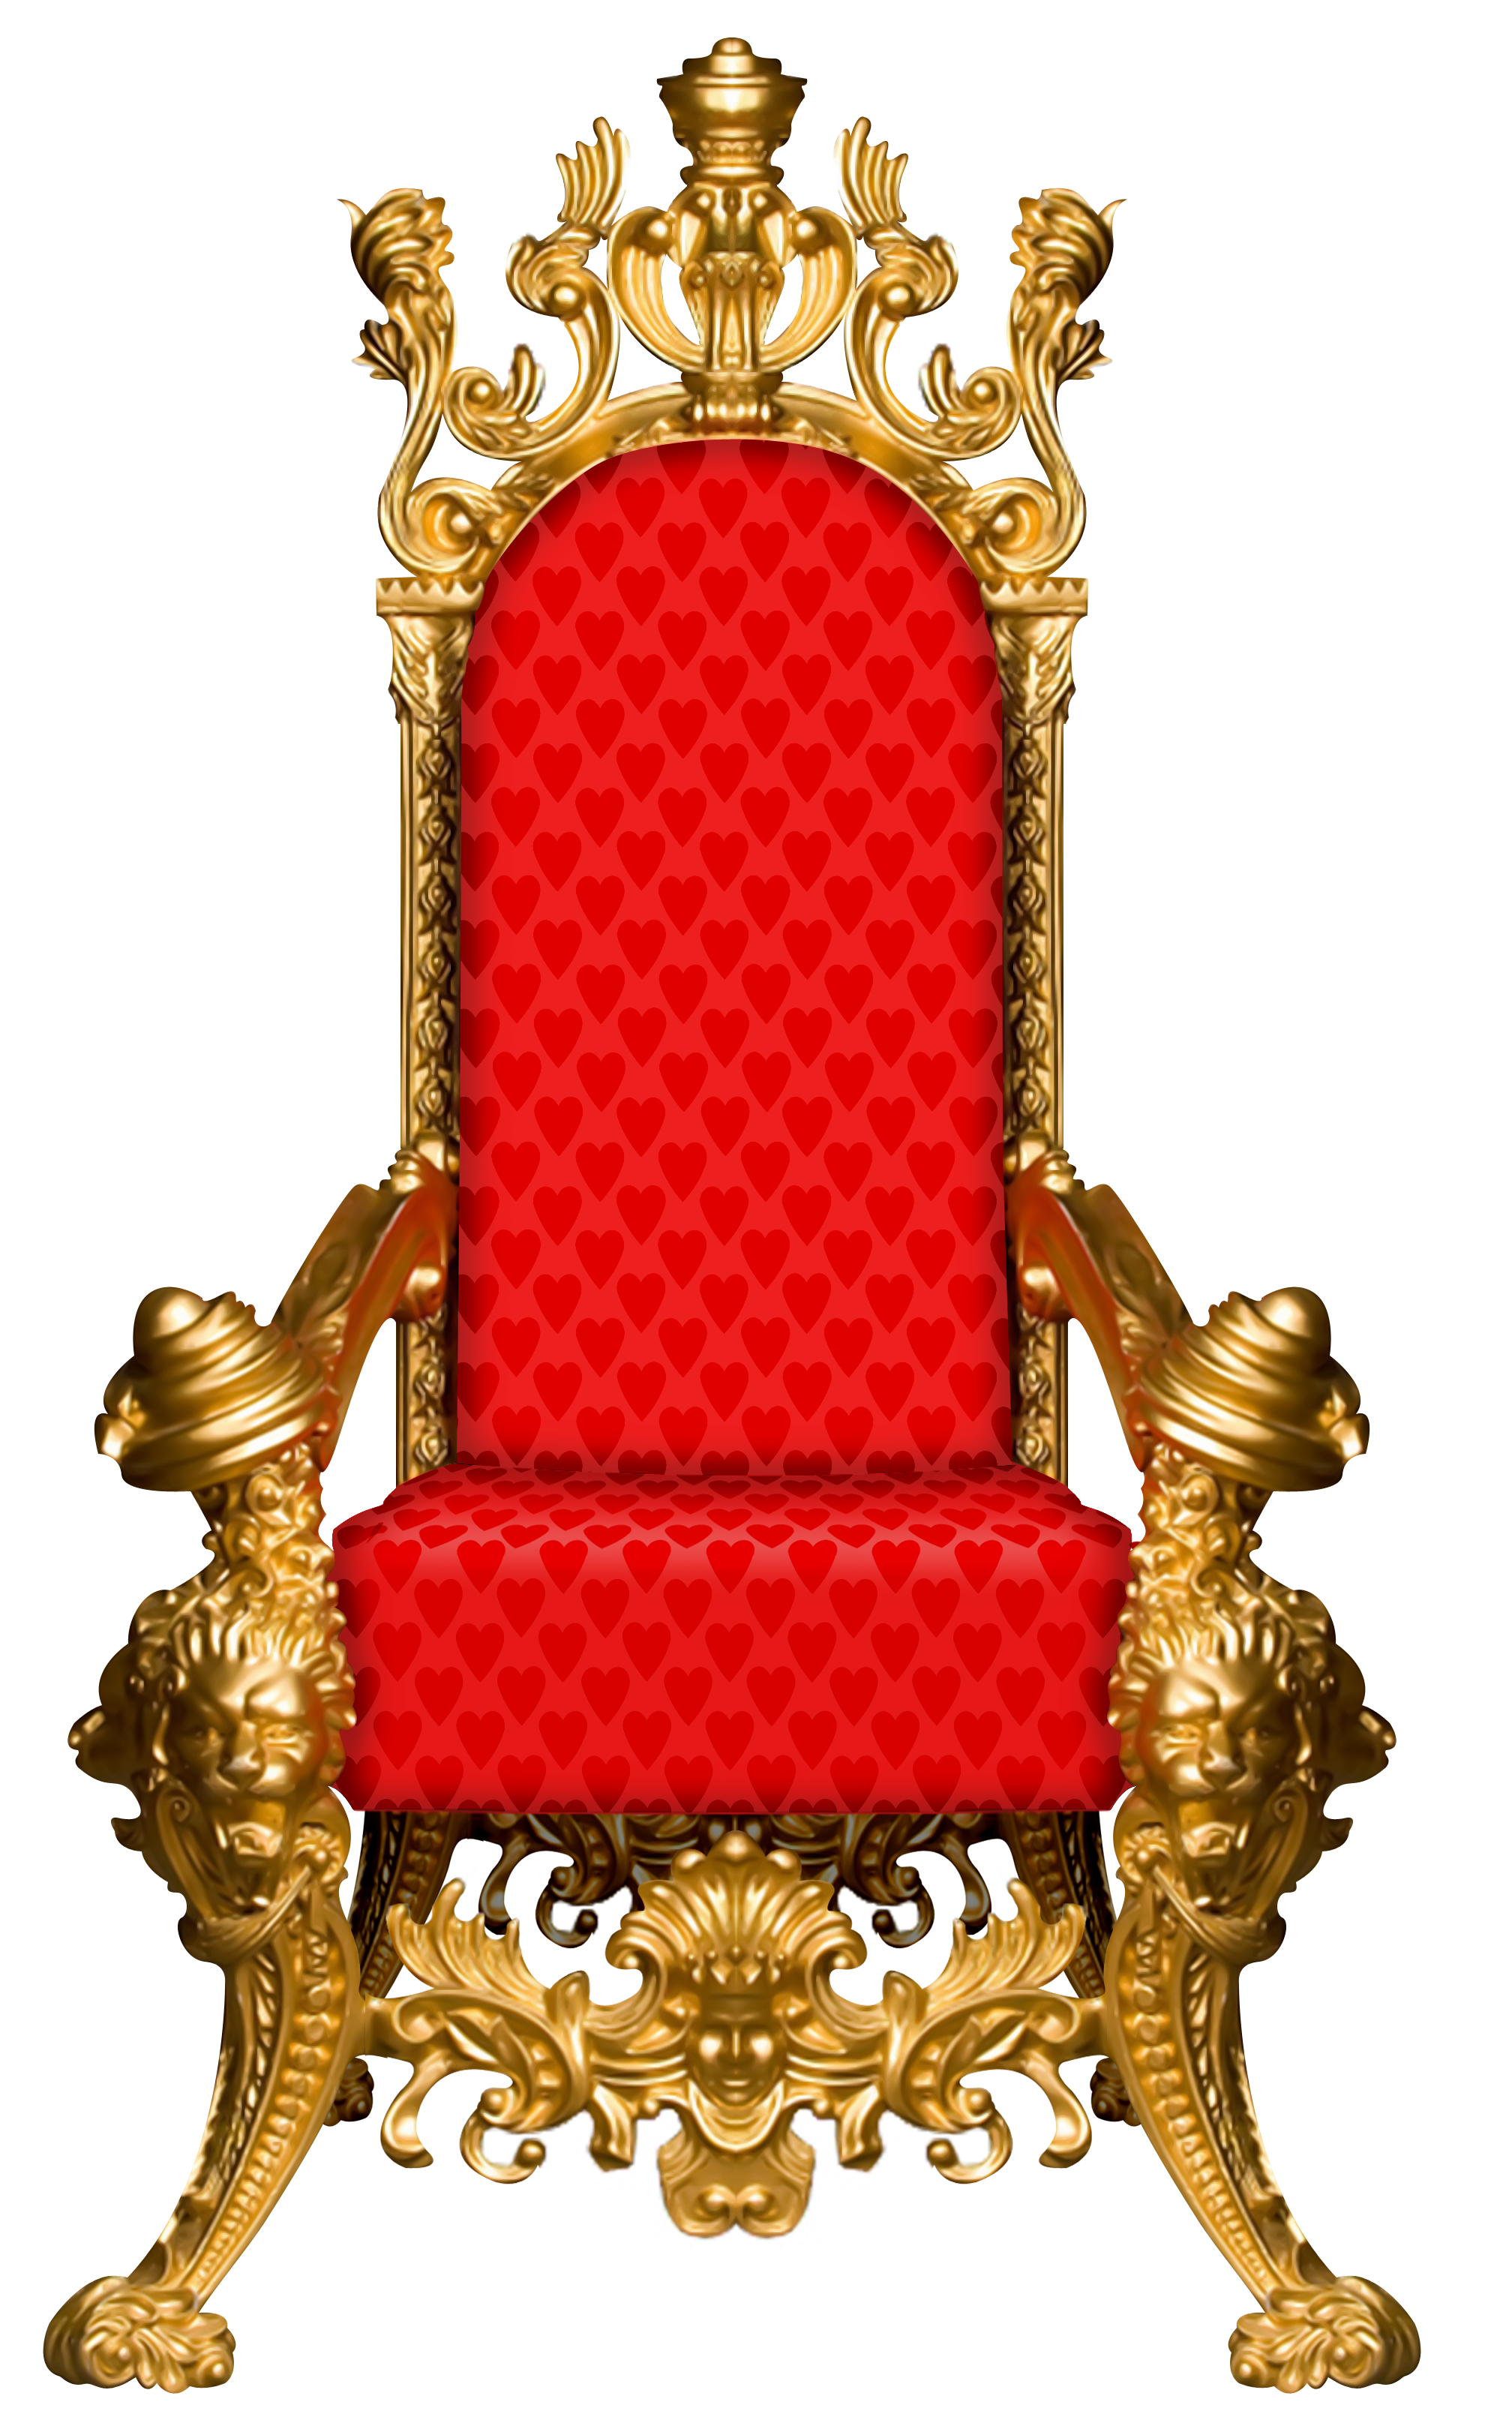 Throne chair png. Red gold furniture fairy